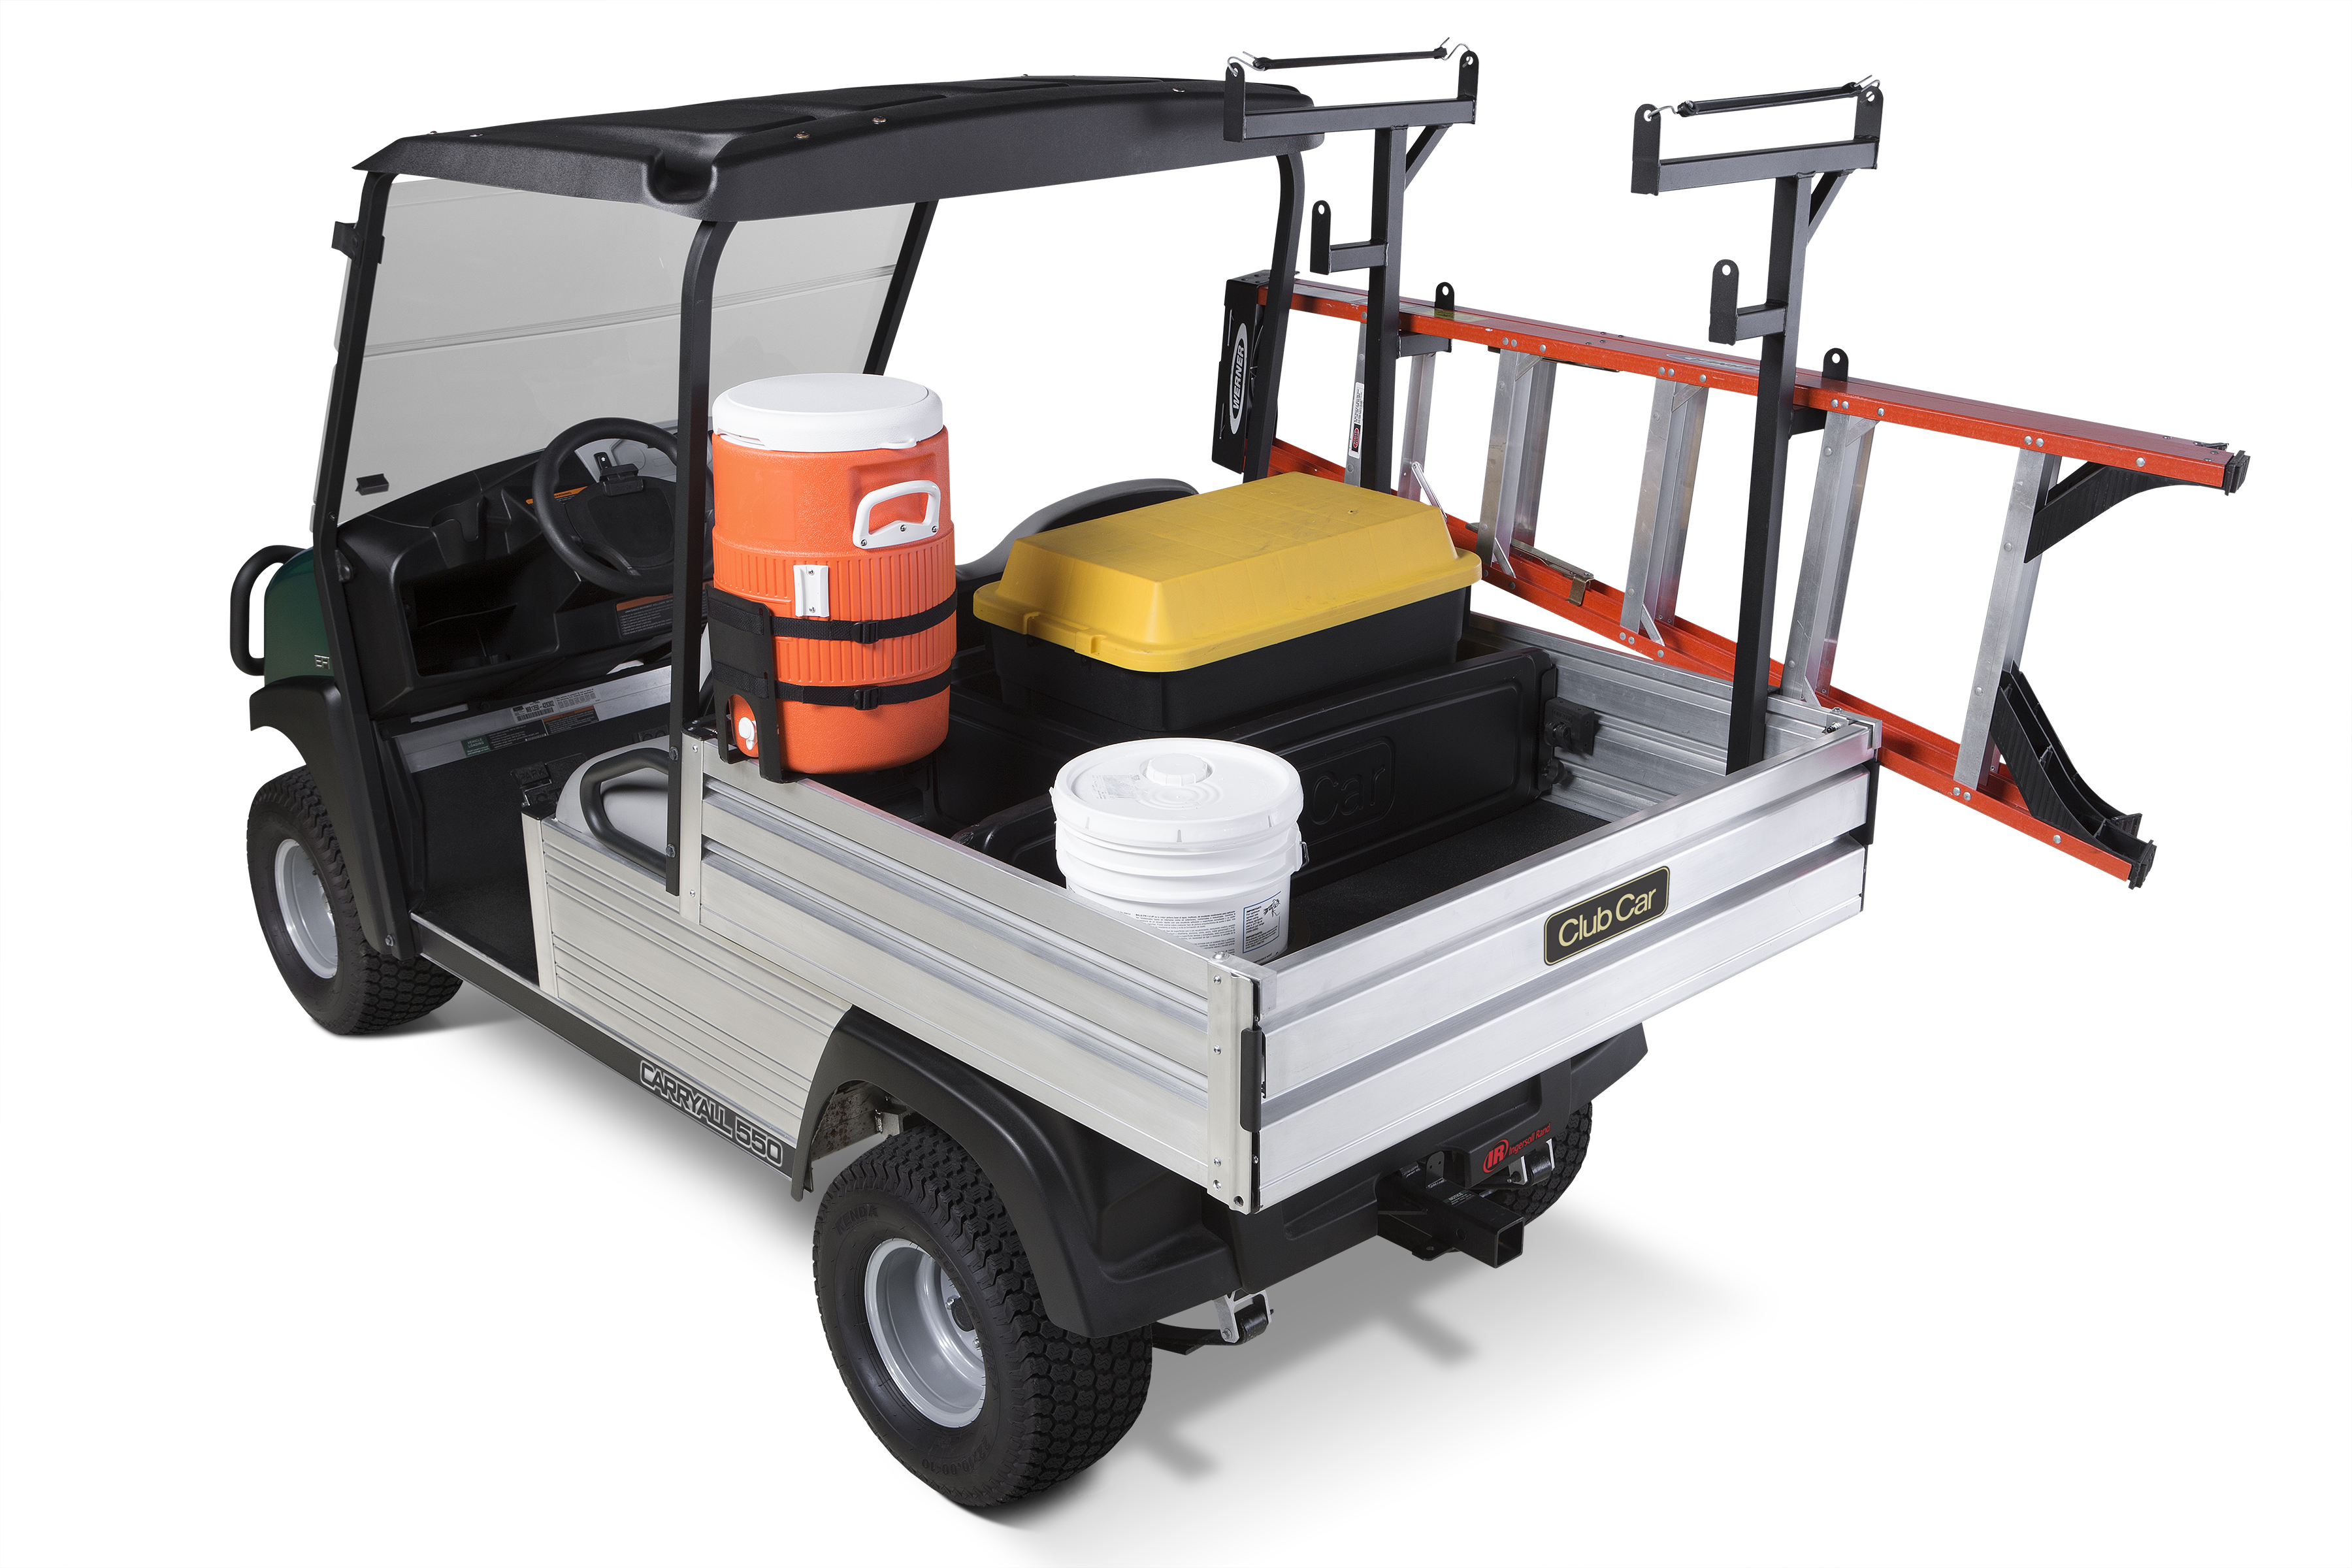 Club Car S New Carryall 174 Utility Vehicles Named To